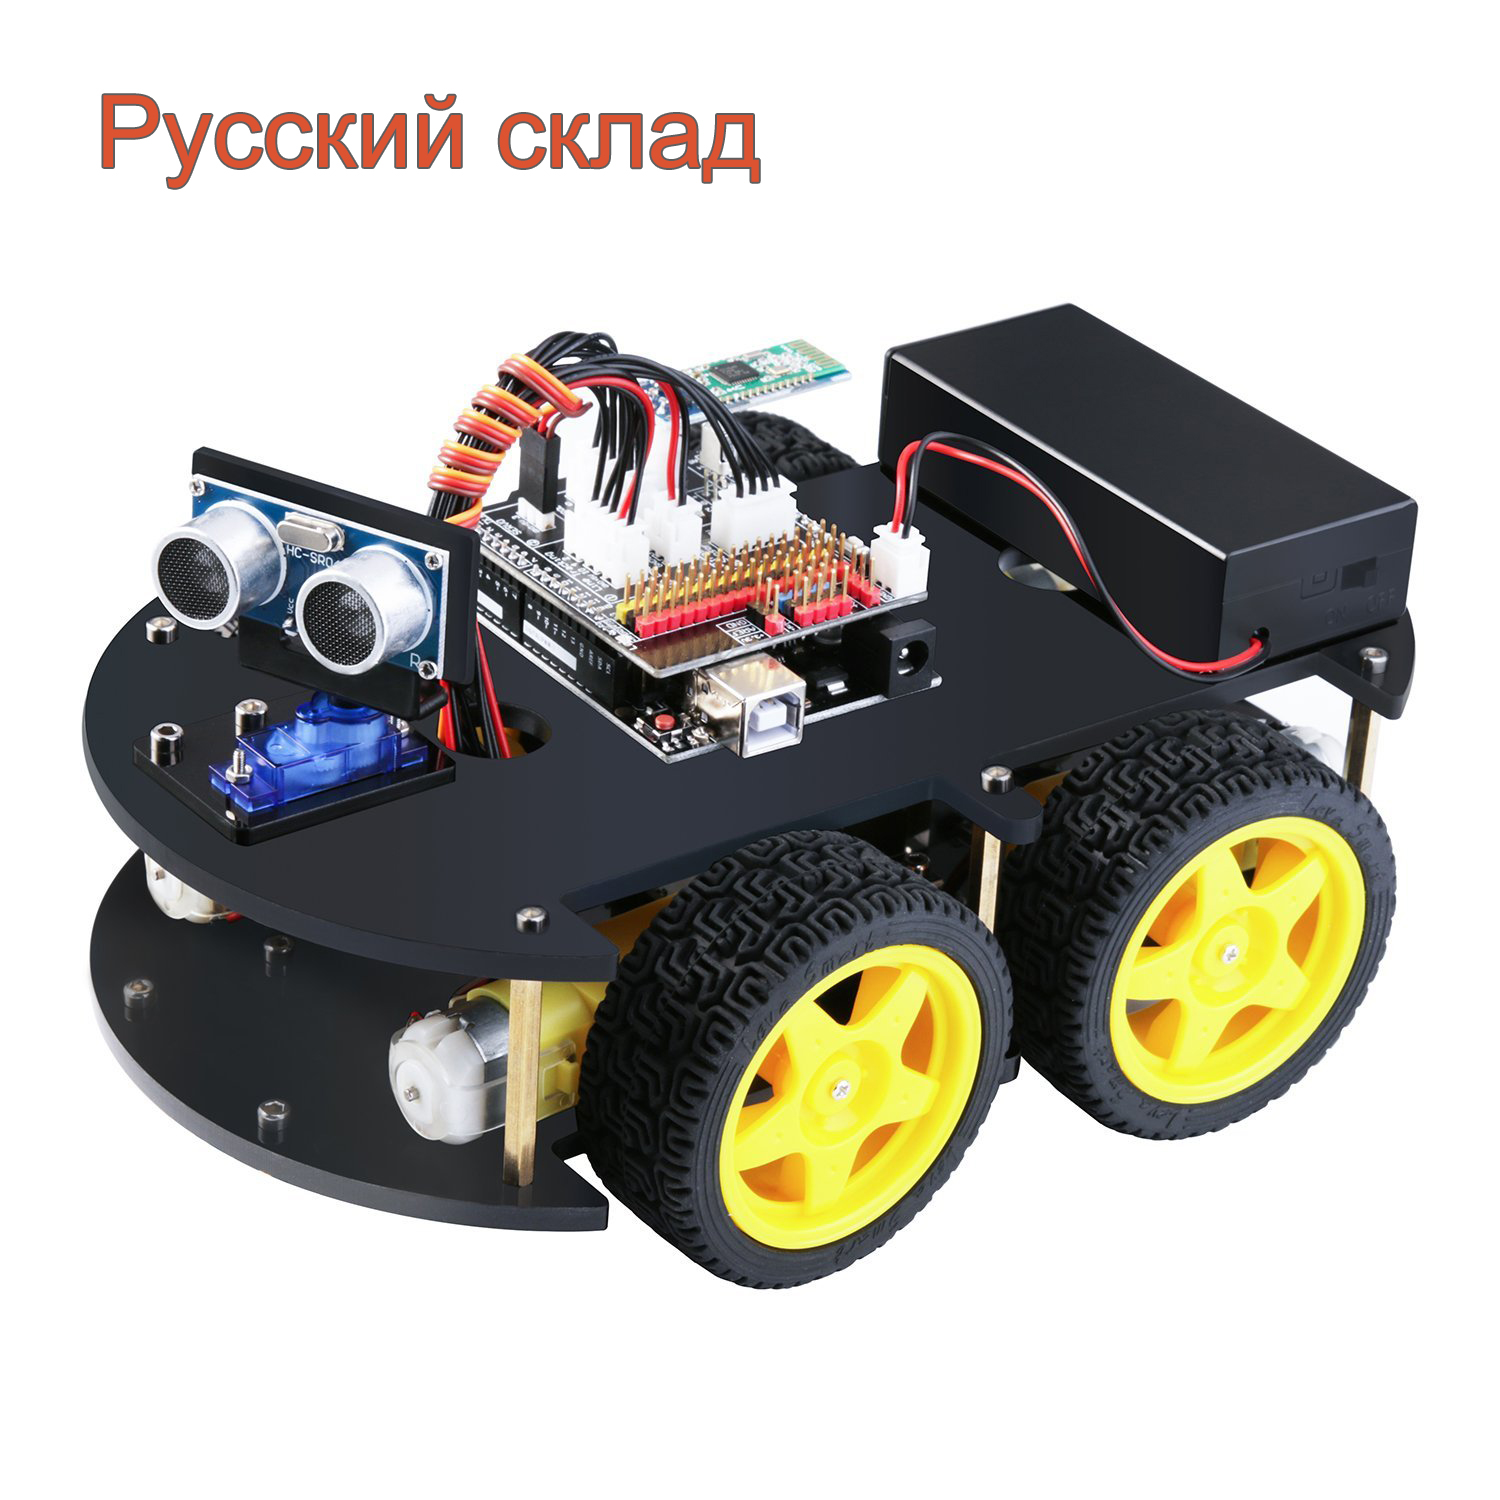 EL-KIT-012 UNO Project Smart Robot Car Kit V 3.0 with UNO R3, Line Tracking Module, Ultrasonic Sensor, Bluetooth ModuleEL-KIT-012 UNO Project Smart Robot Car Kit V 3.0 with UNO R3, Line Tracking Module, Ultrasonic Sensor, Bluetooth Module